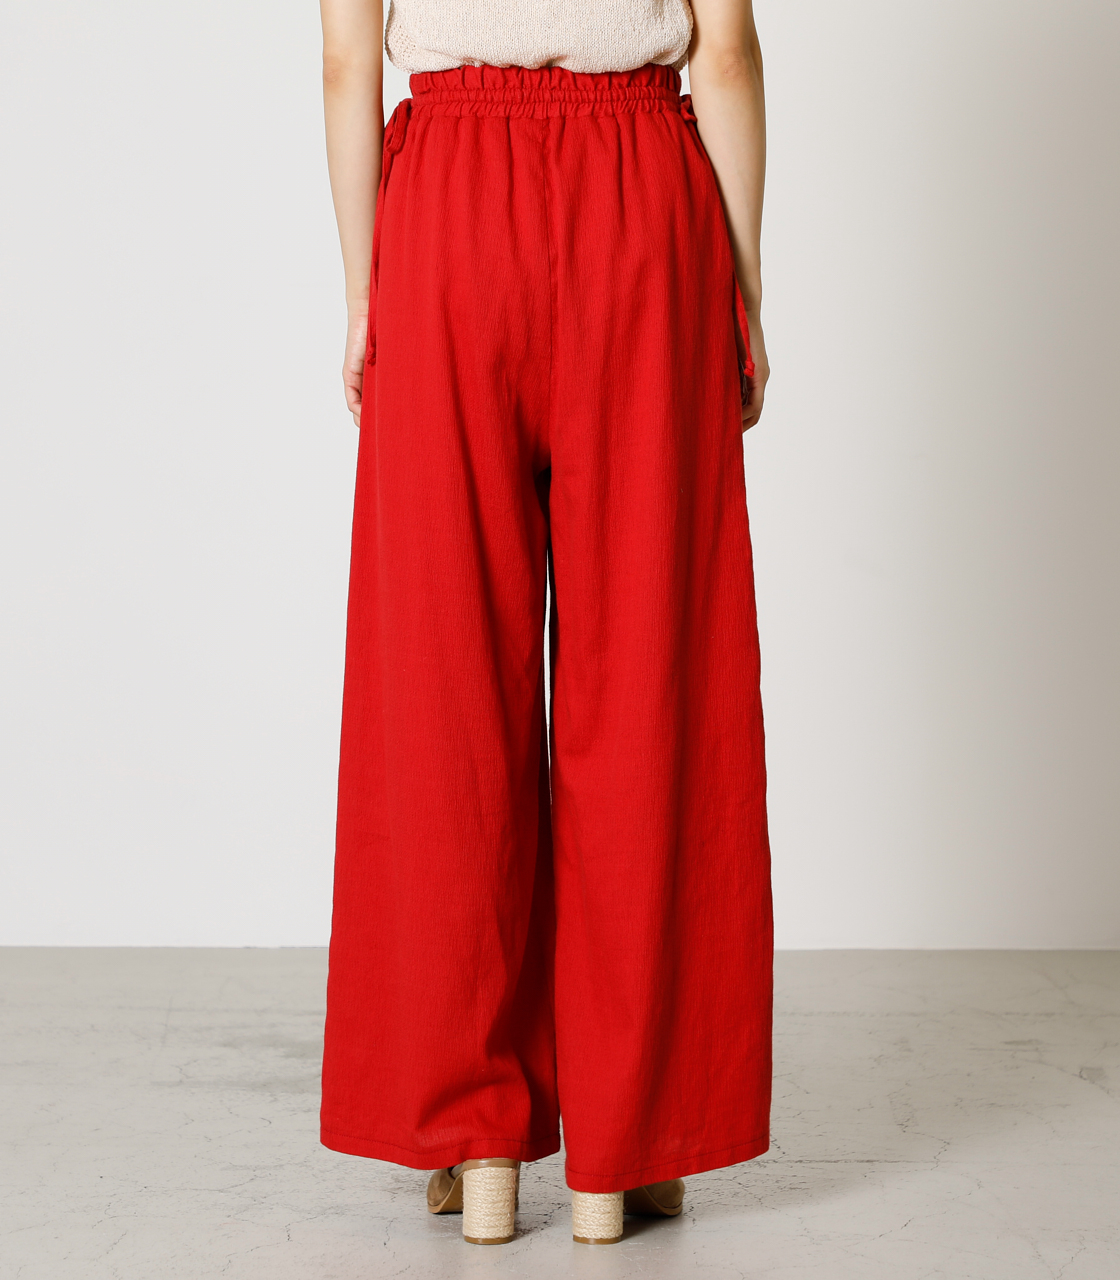 LINEN TOUCH LOOSE PANTS/リネンタッチルーズパンツ 詳細画像 RED 6